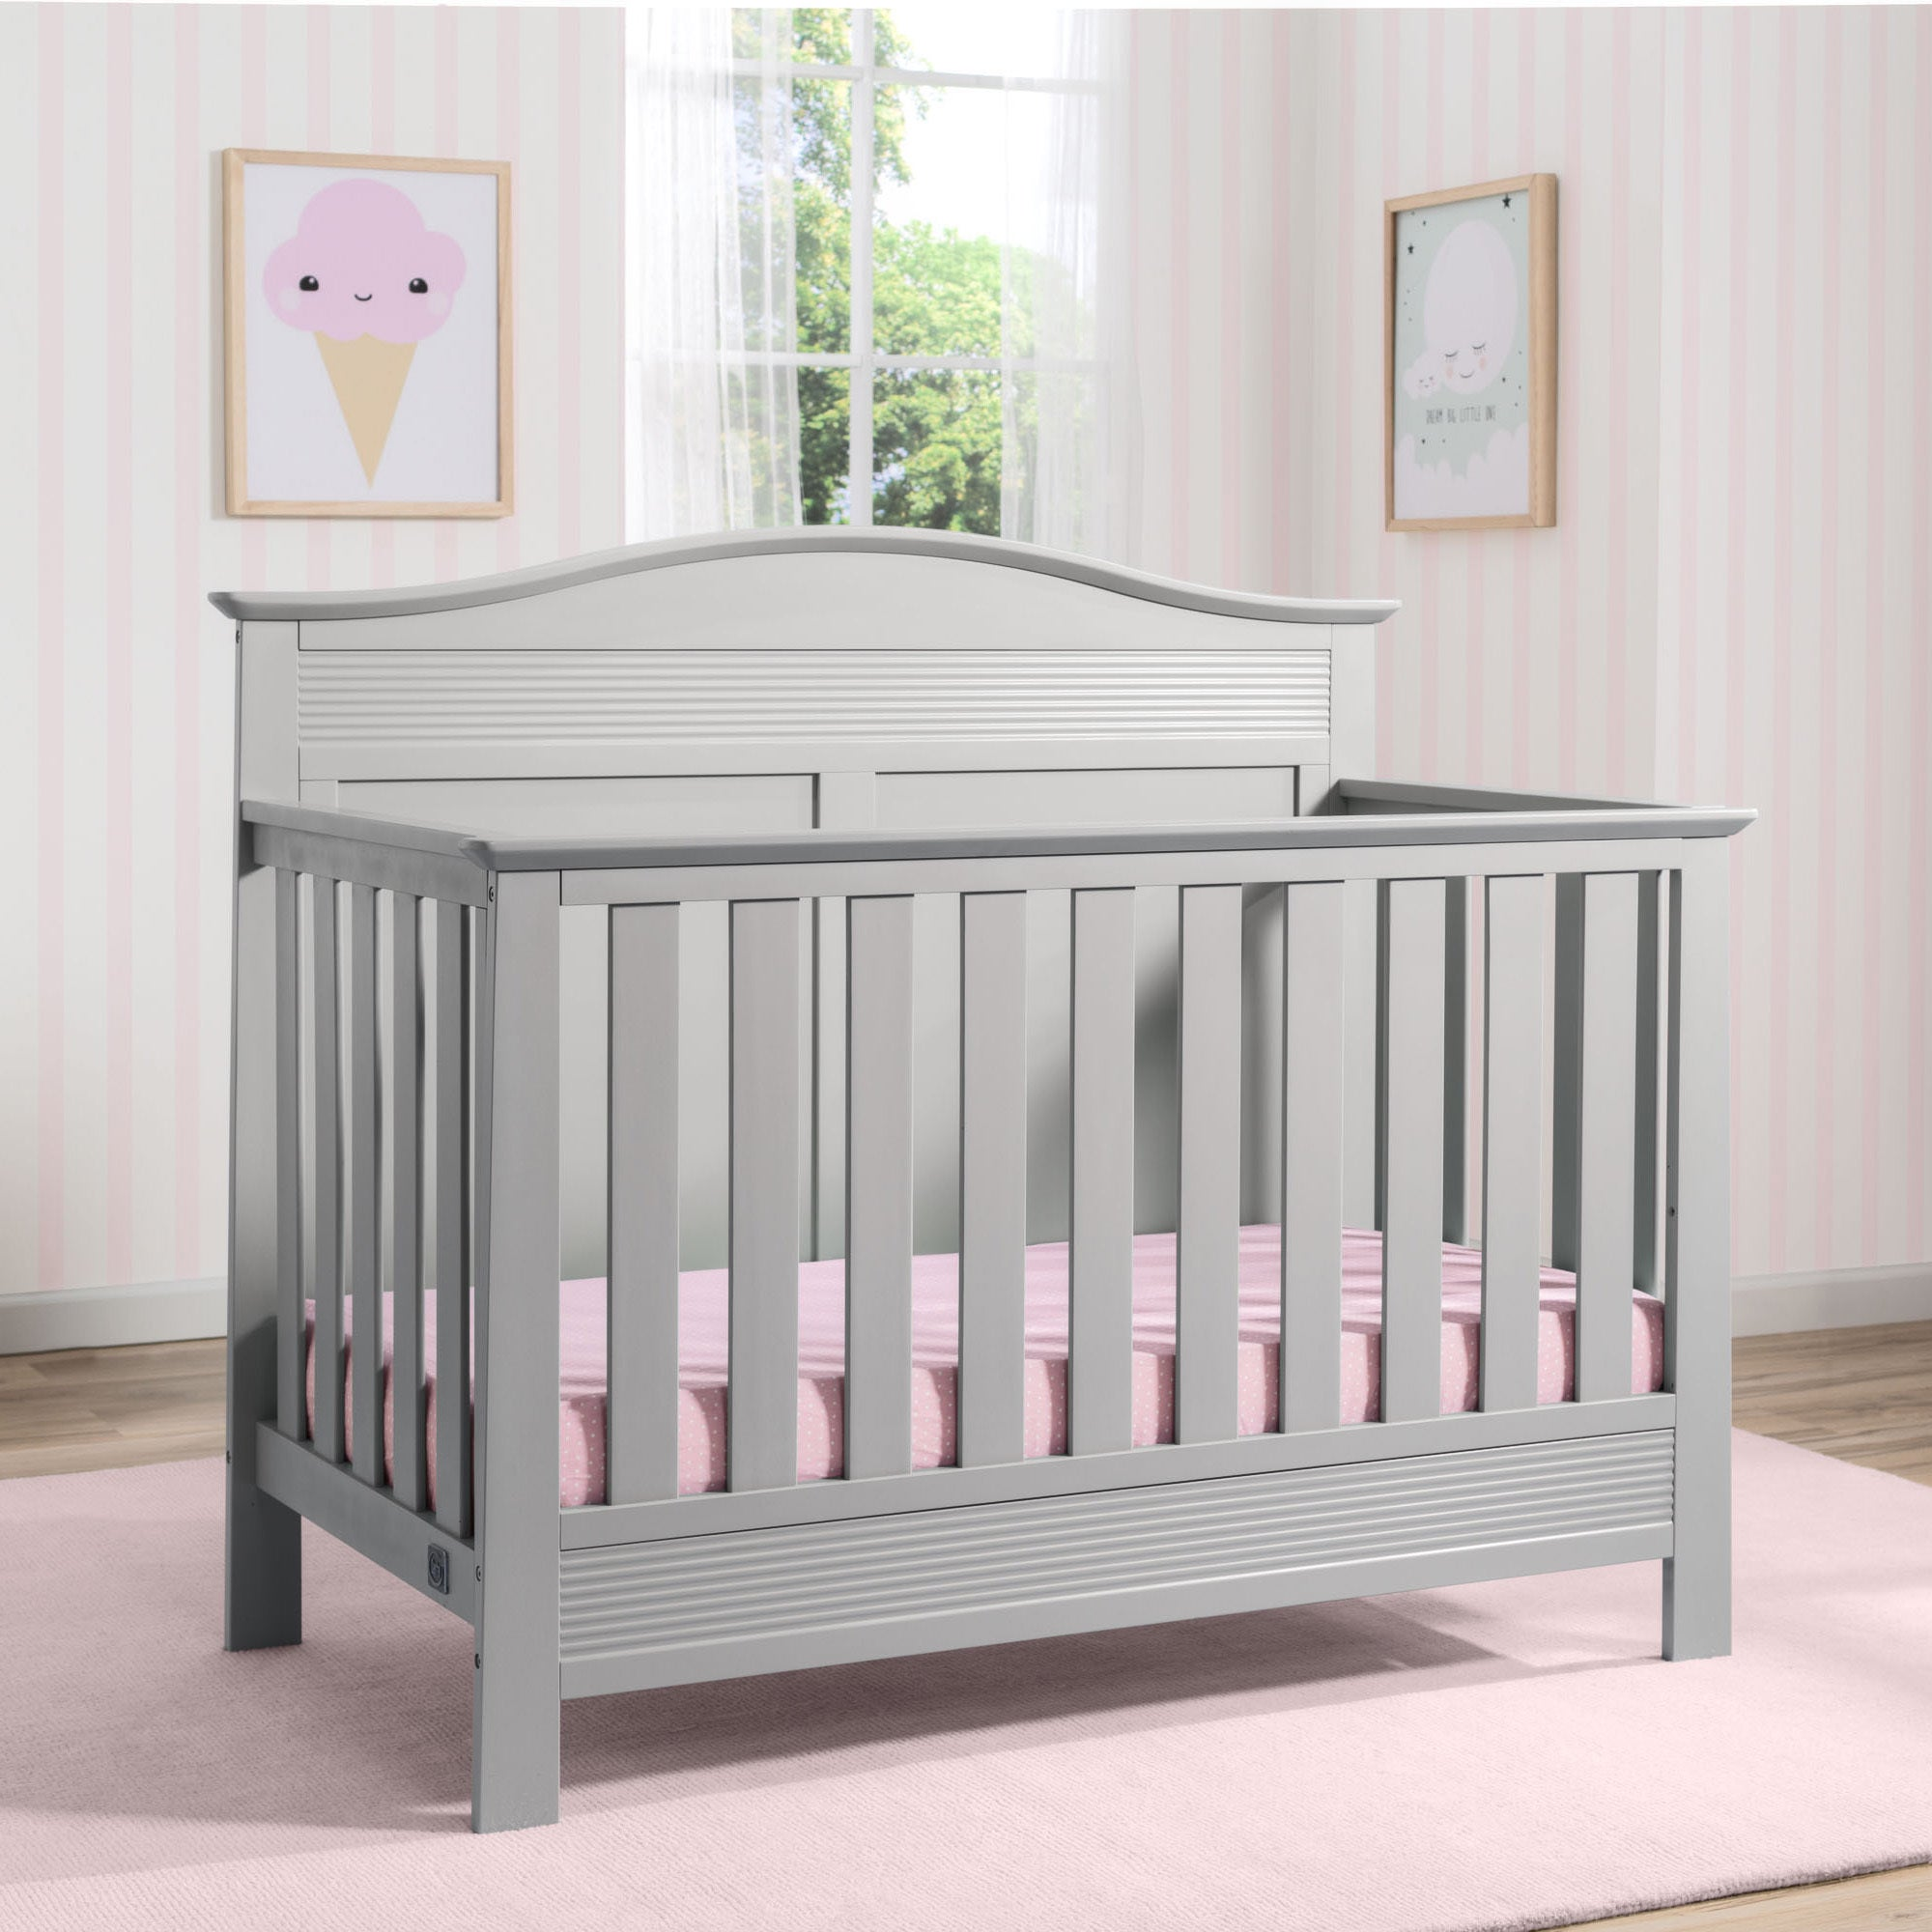 Serta Barrett 4 In 1 Convertible Crib